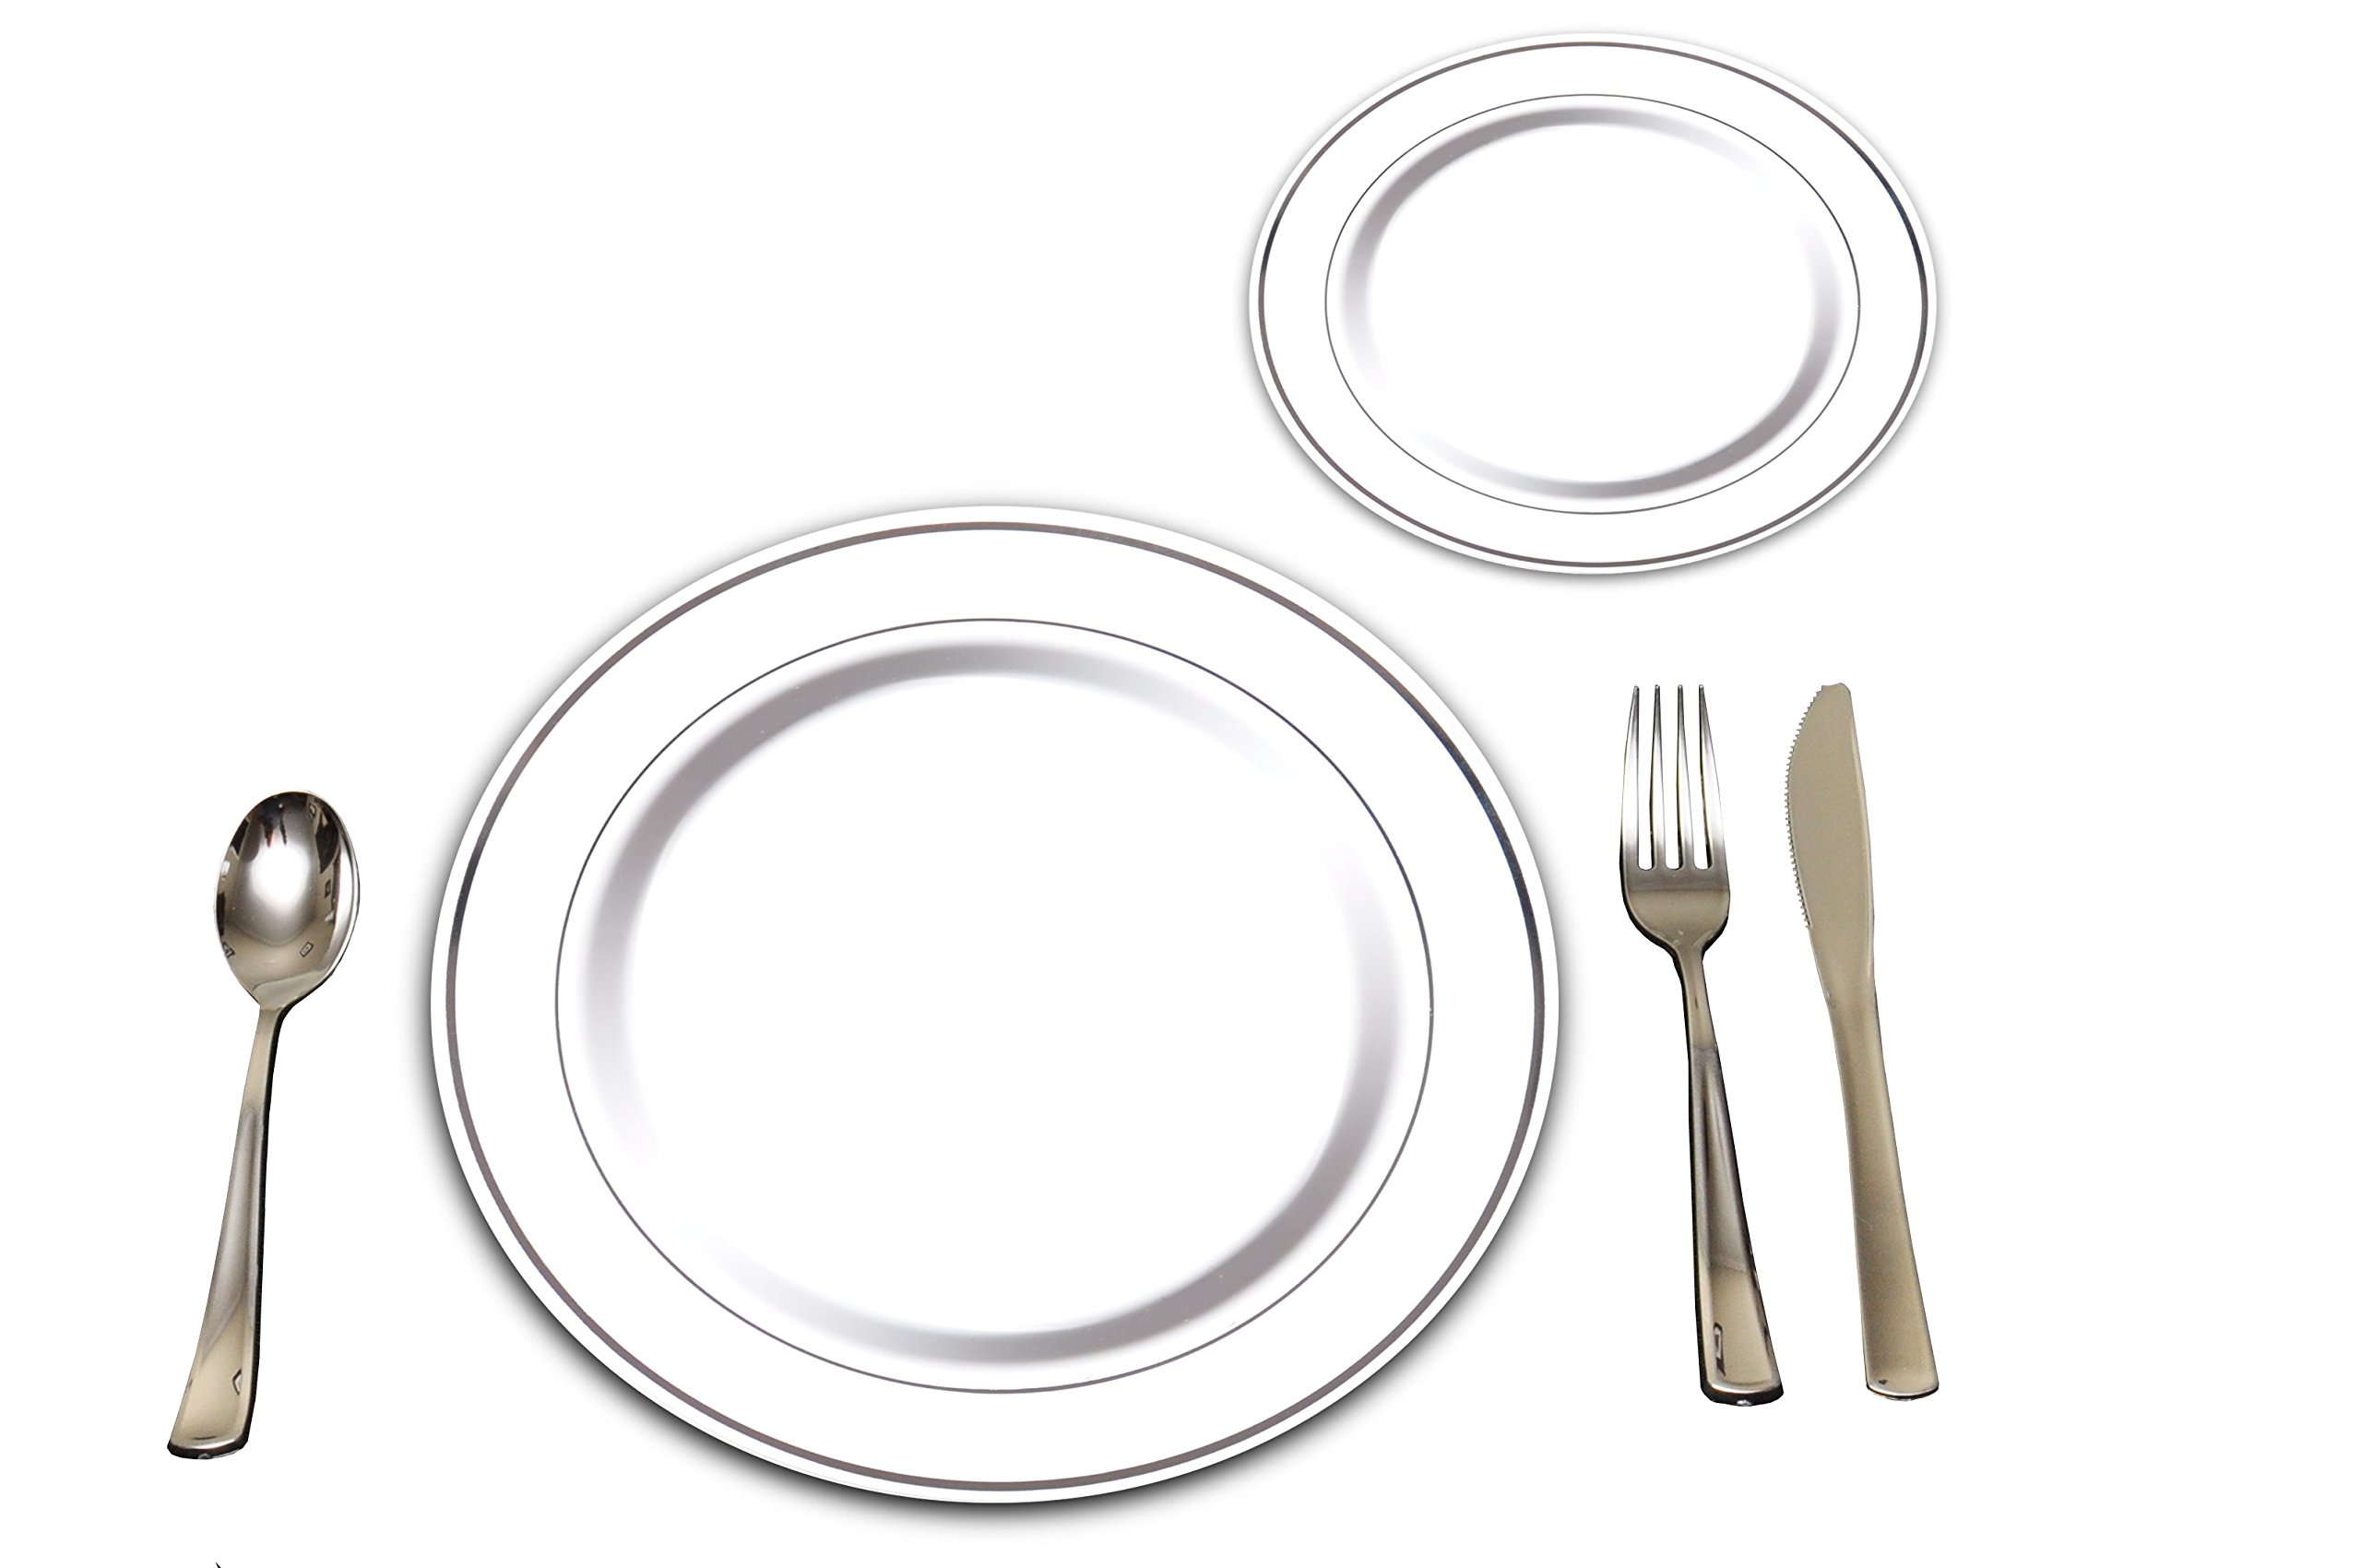 25 Heavyweight Elegant Plastic Disposable Place Settings 25 Dinner Plates 25 Salad or Dessert Plates \u0026 25 Polished Silver Plastic Forks Knives \u0026 Spoons  sc 1 st  Amazon.com & Best Rated in Disposable Plates \u0026 Helpful Customer Reviews ...